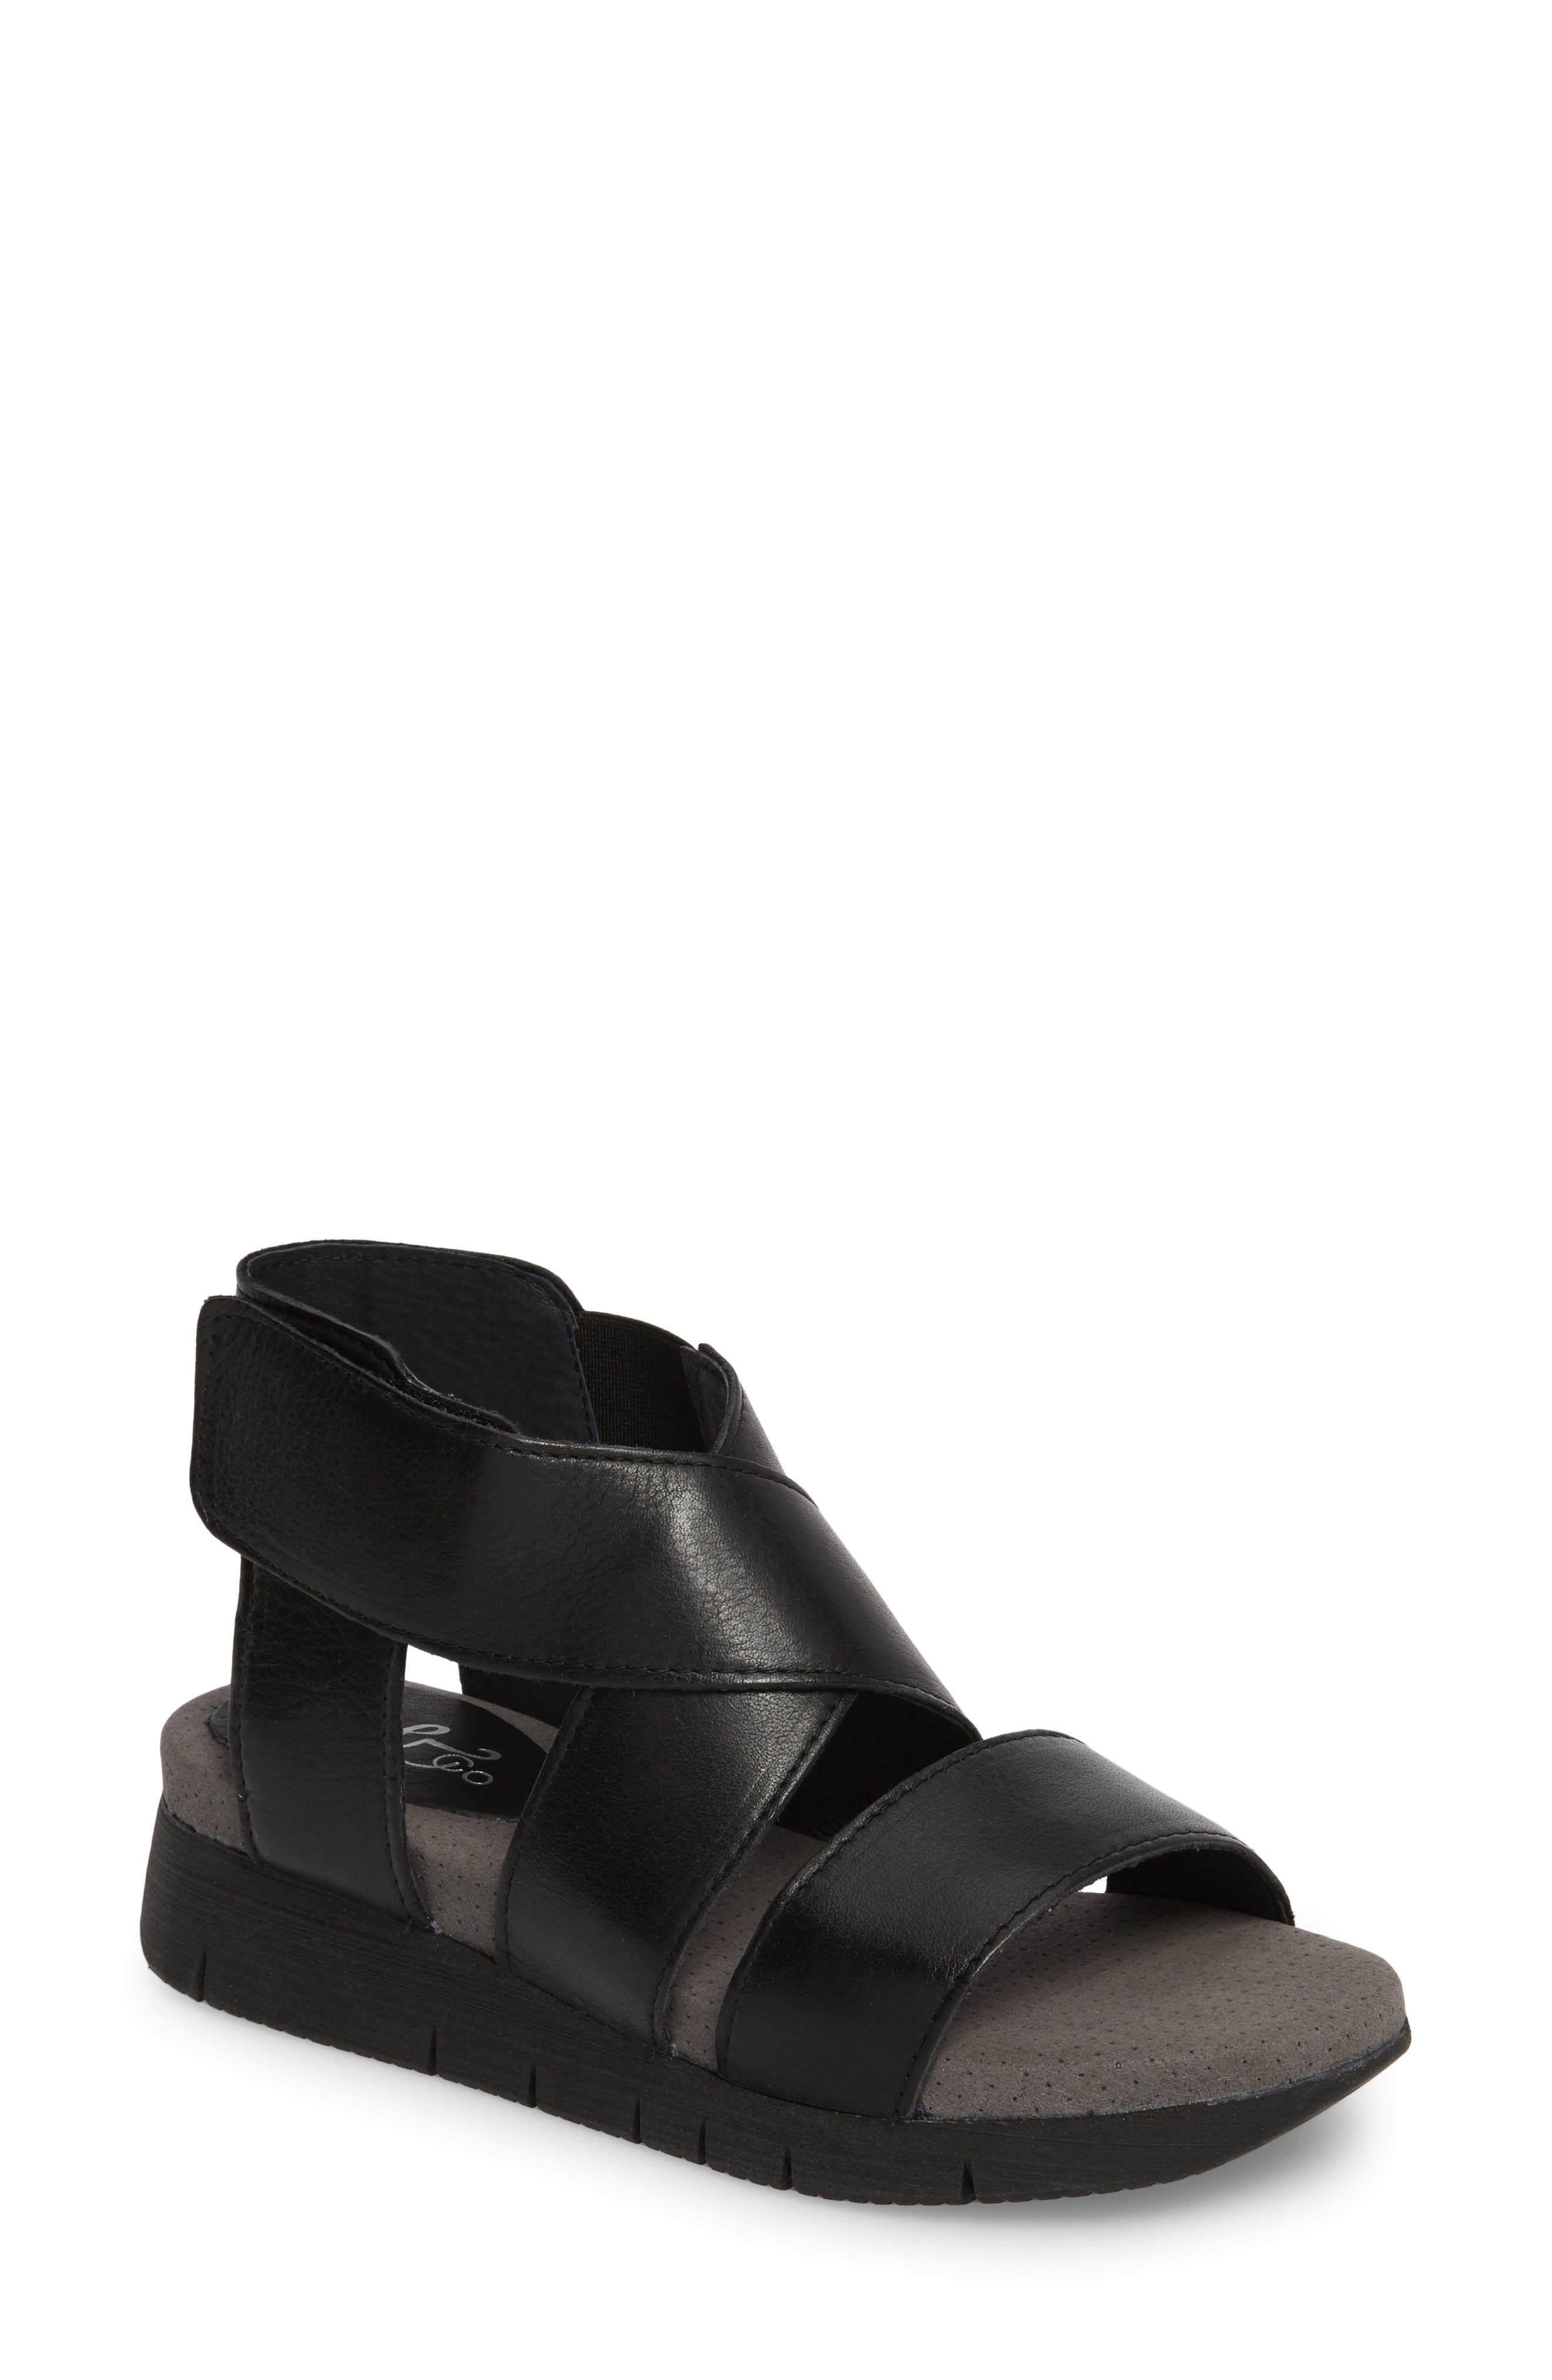 BOS. & CO. Piper Wedge Sandal, Main, color, BLACK SAUVAGE LEATHER